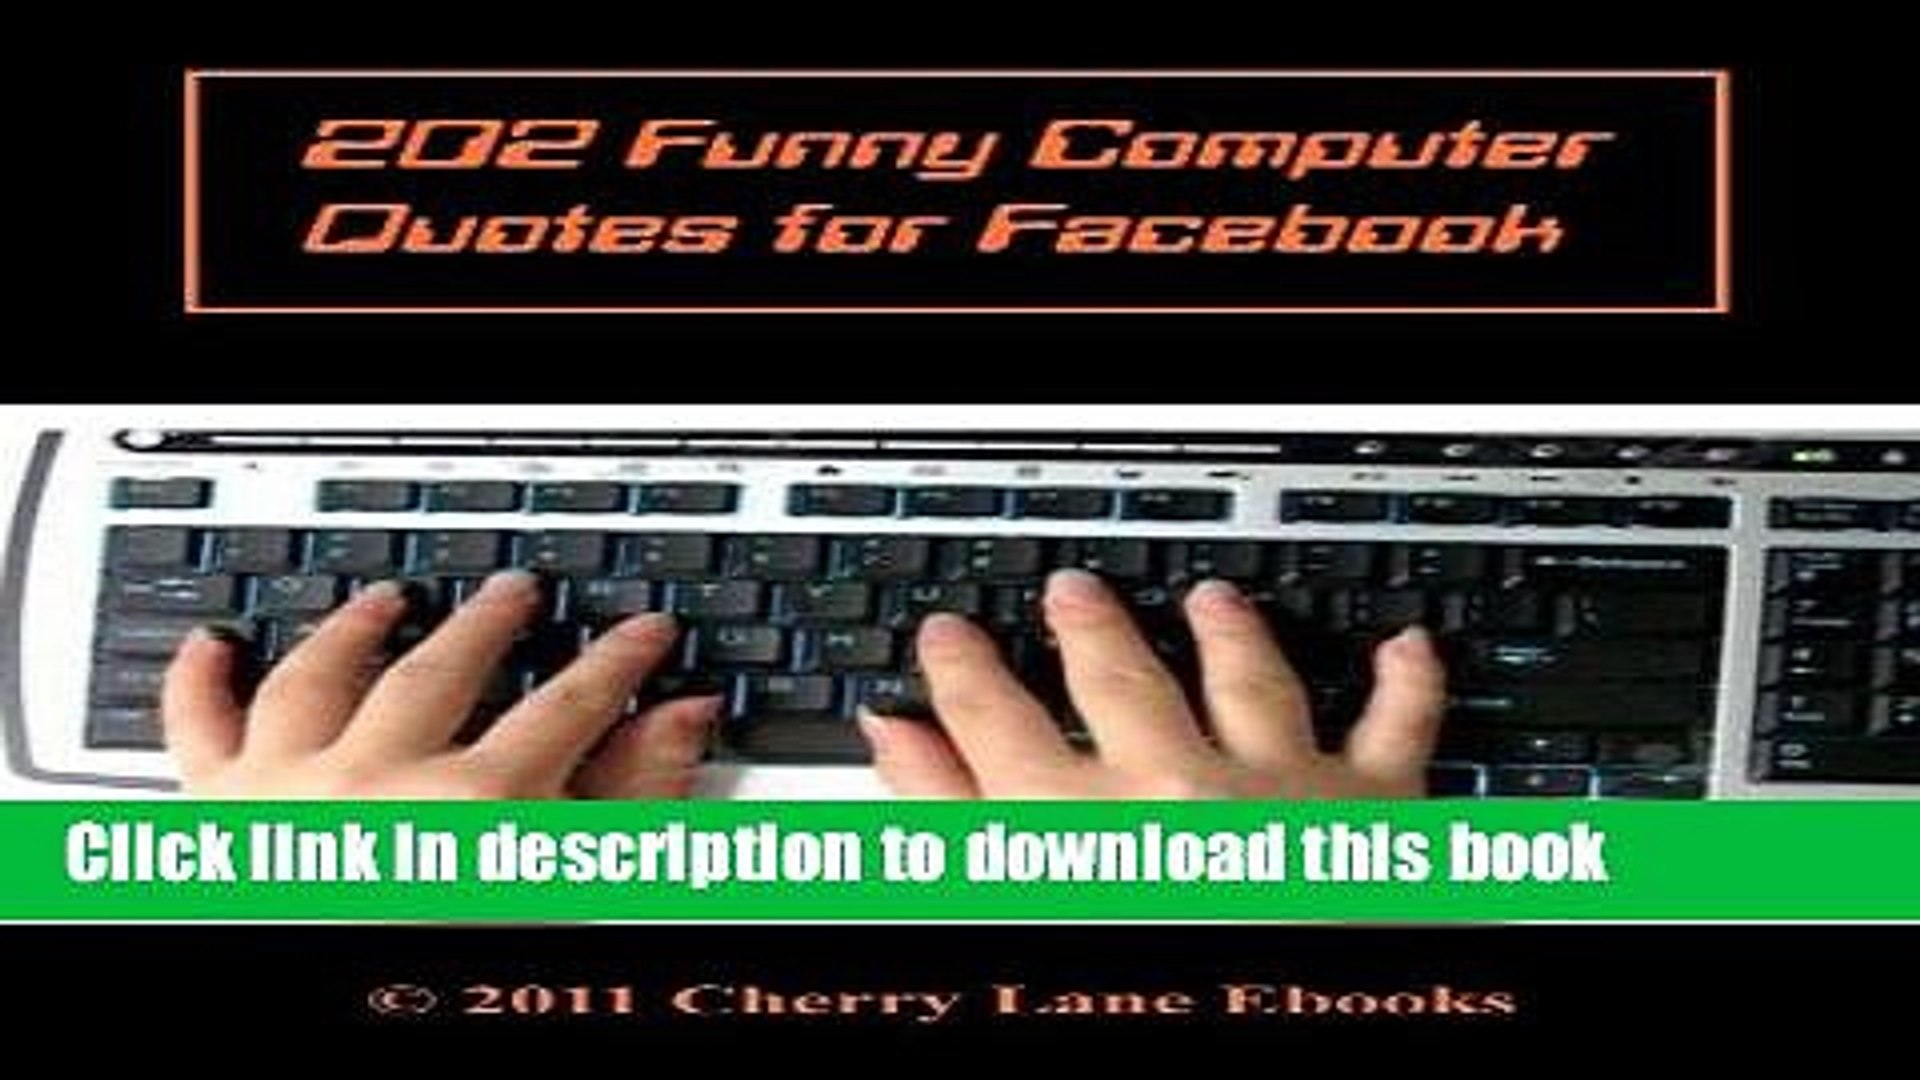 202 Funny Computer Quotes for Facebook